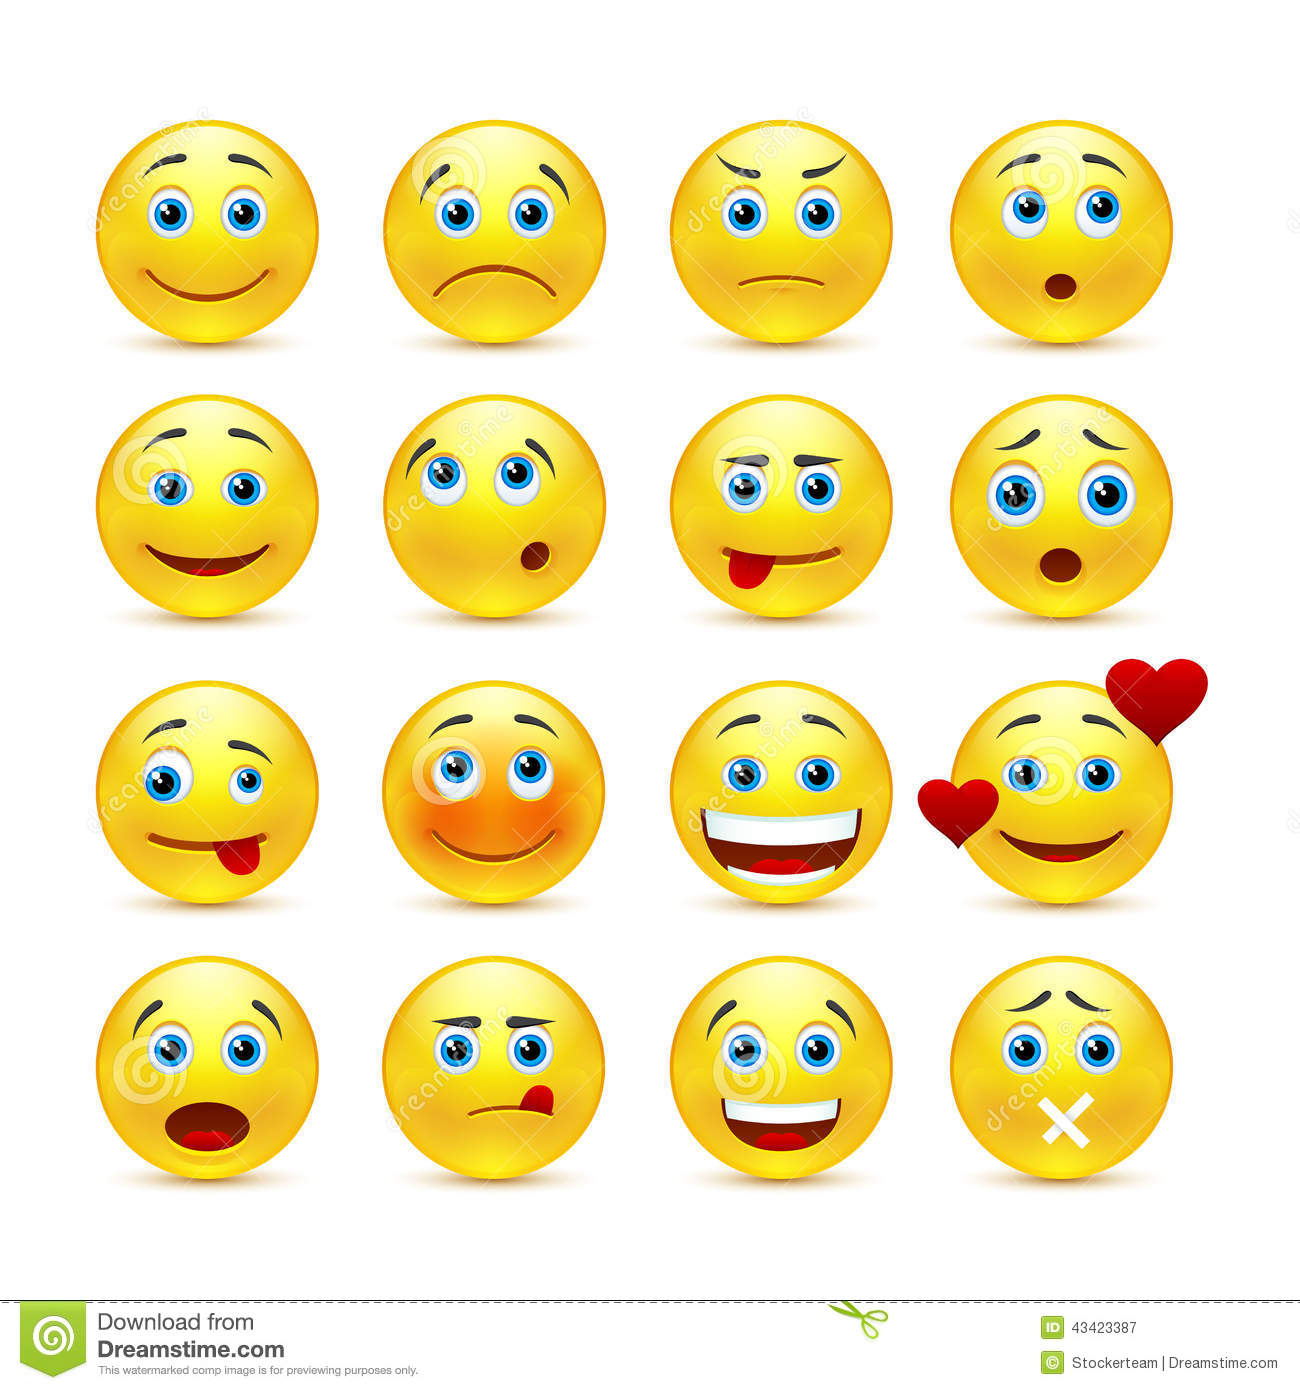 Stock Illustration Collection Smilies Different Emotions Vector Emotional Face Icons Image43423387 on happy cartoon mouth